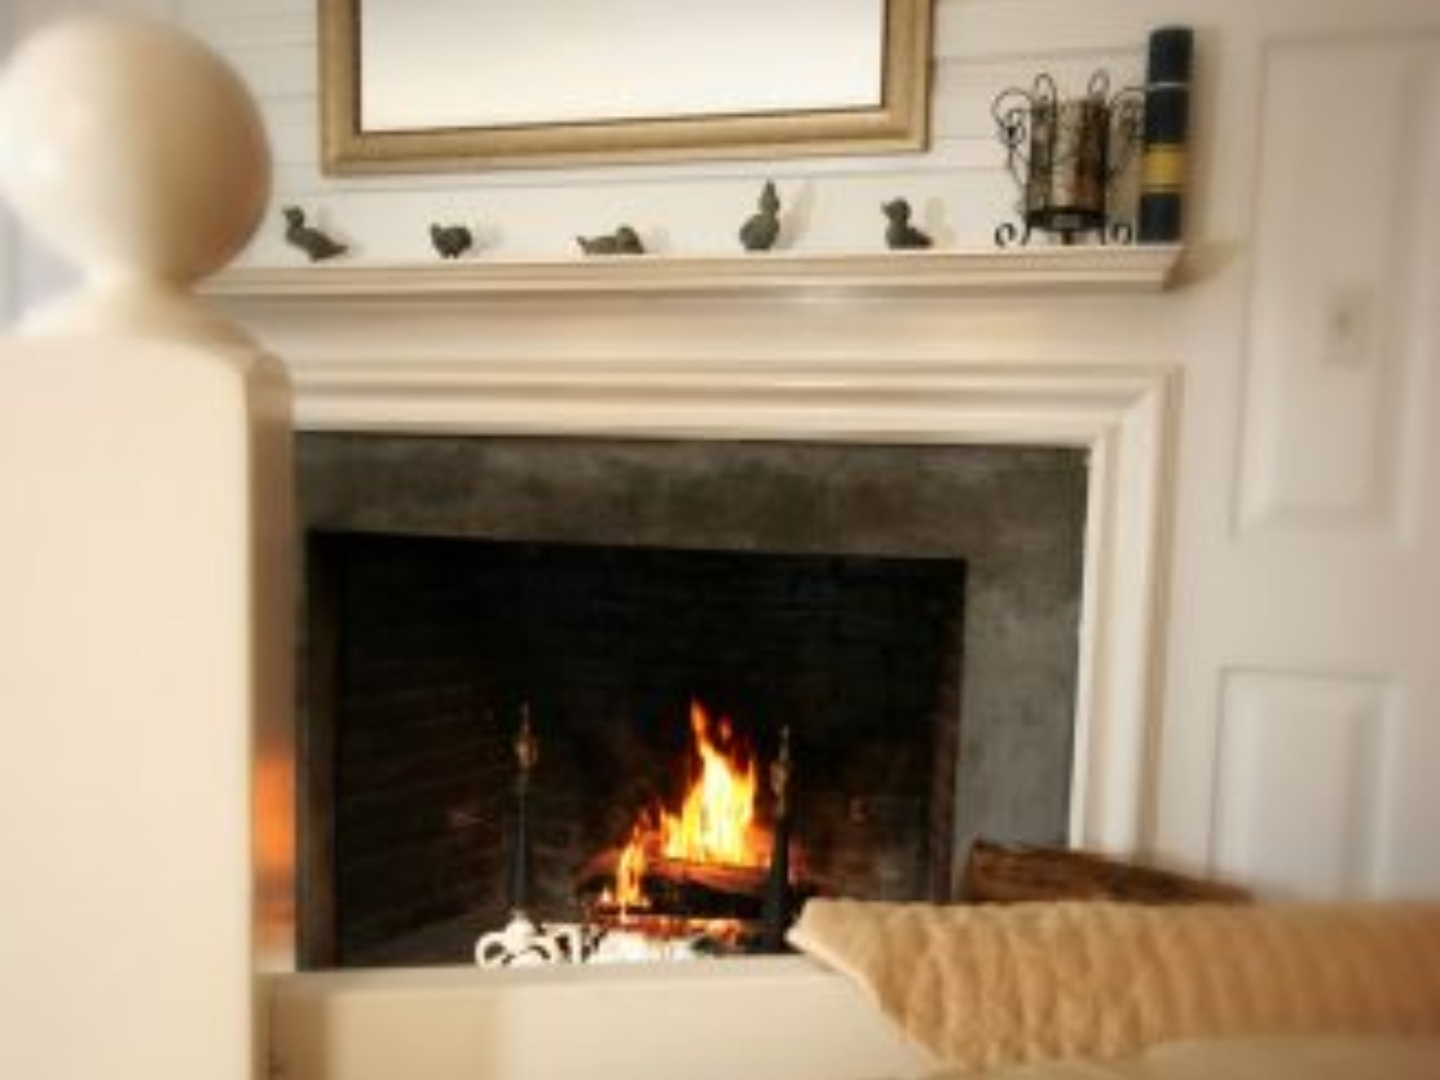 A fire place sitting in a living room with a fireplace at Lamb and Lion Inn.